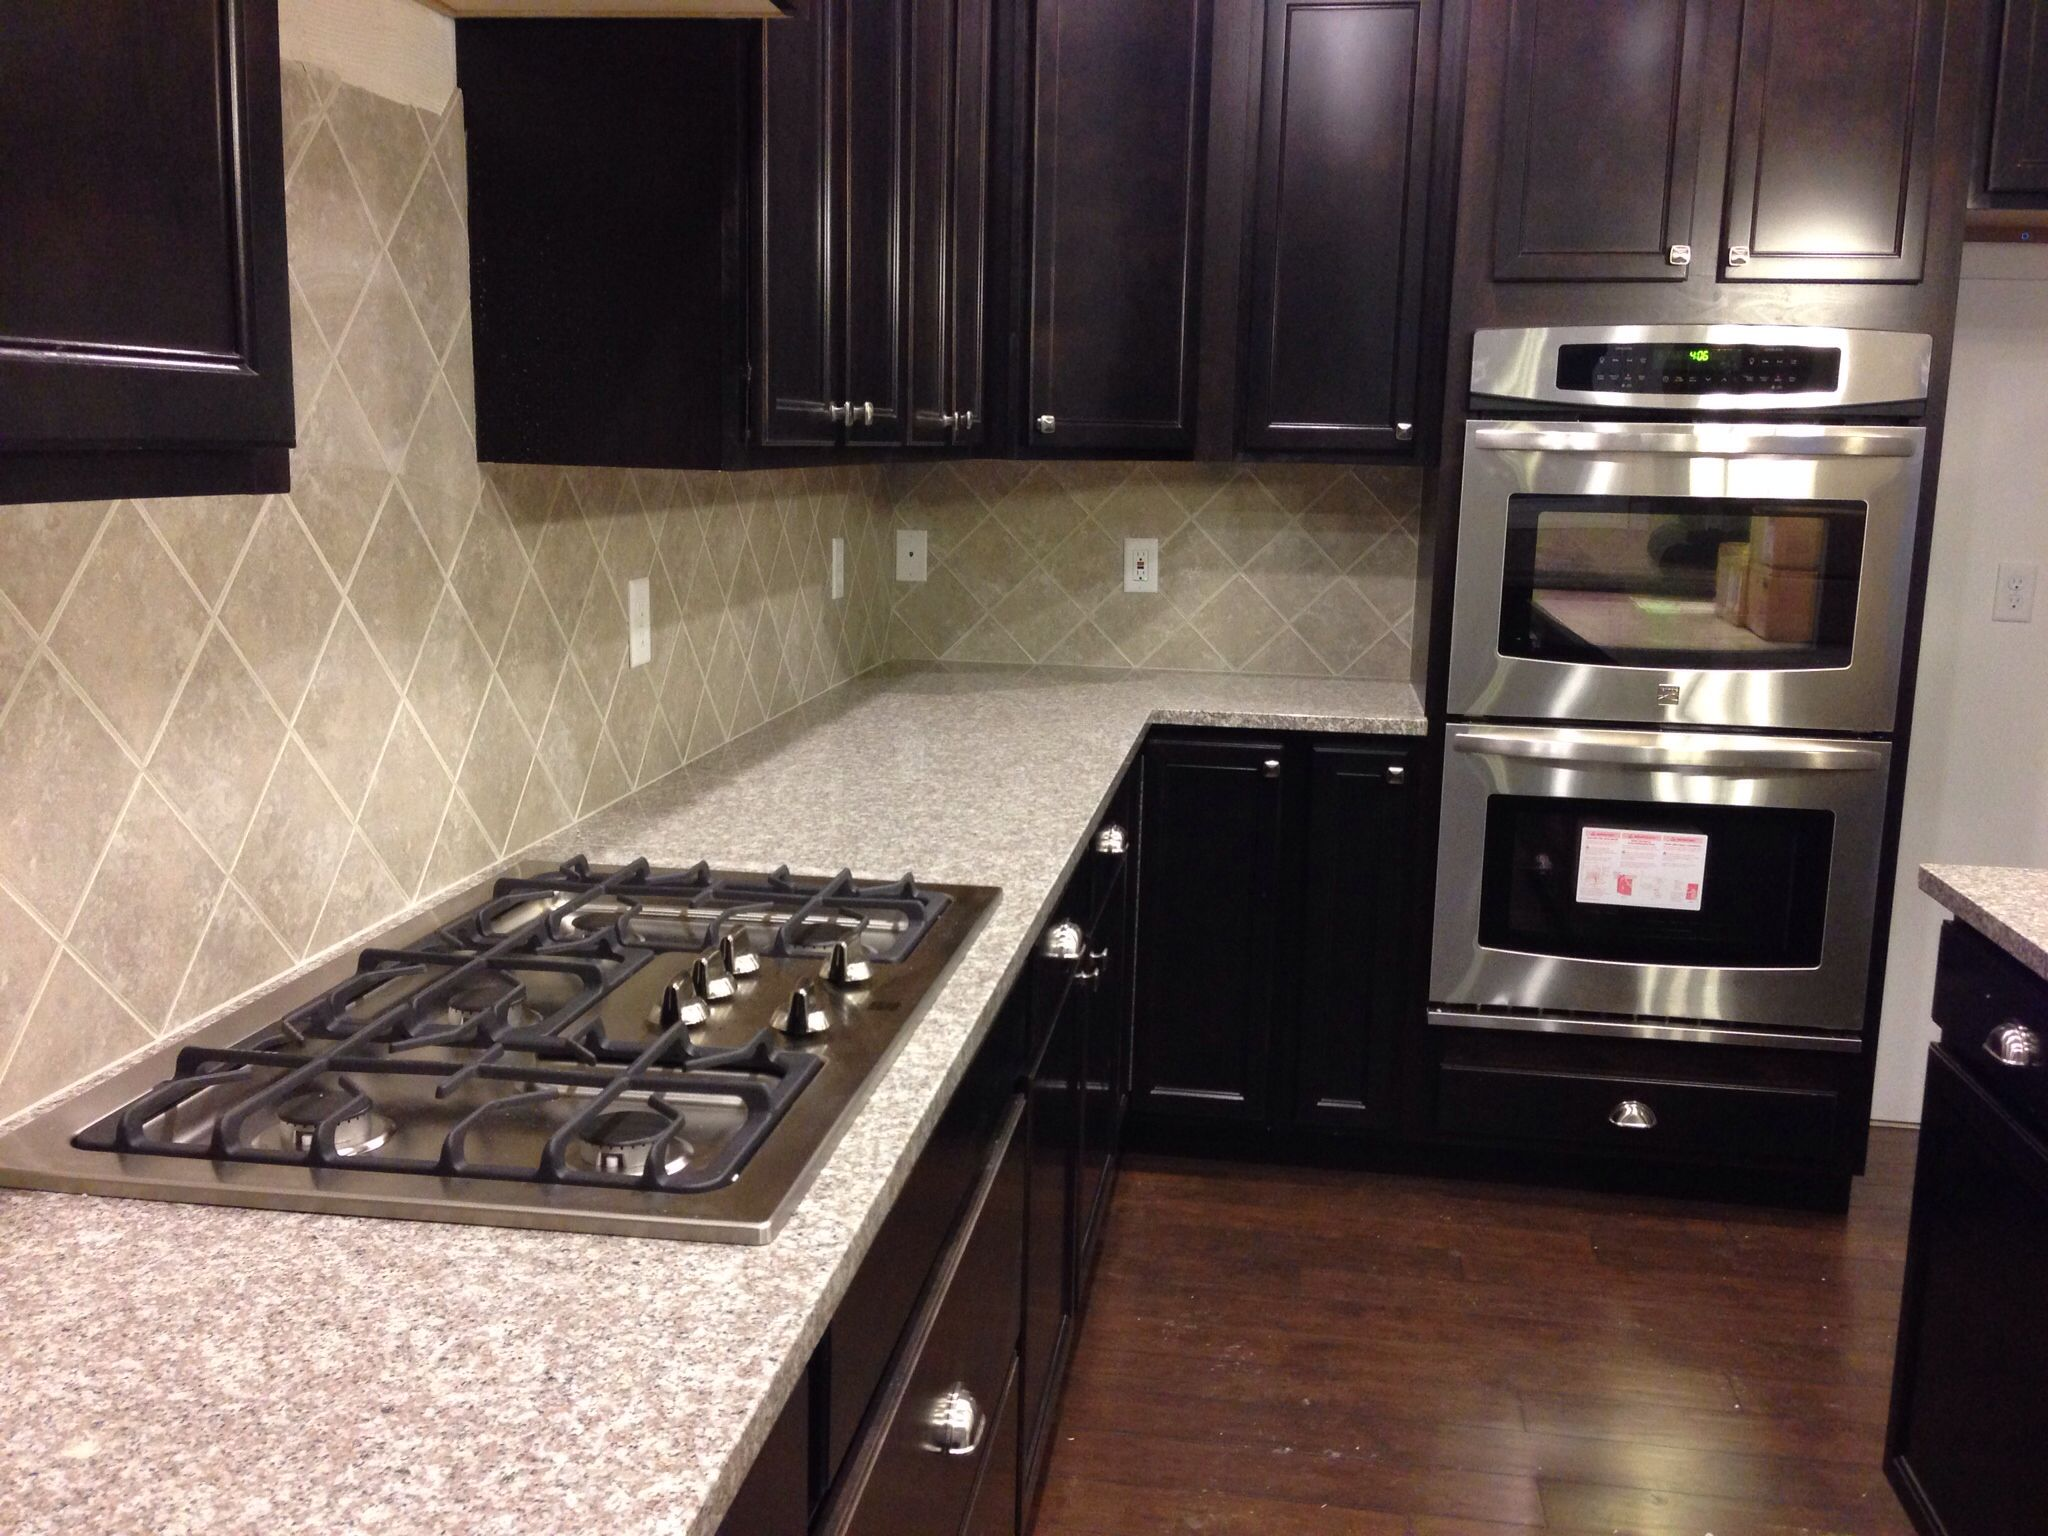 Mahogany Granite Countertops With Eased Edges, Sandalo Tile On The  Diagonal, And Kenmore Double